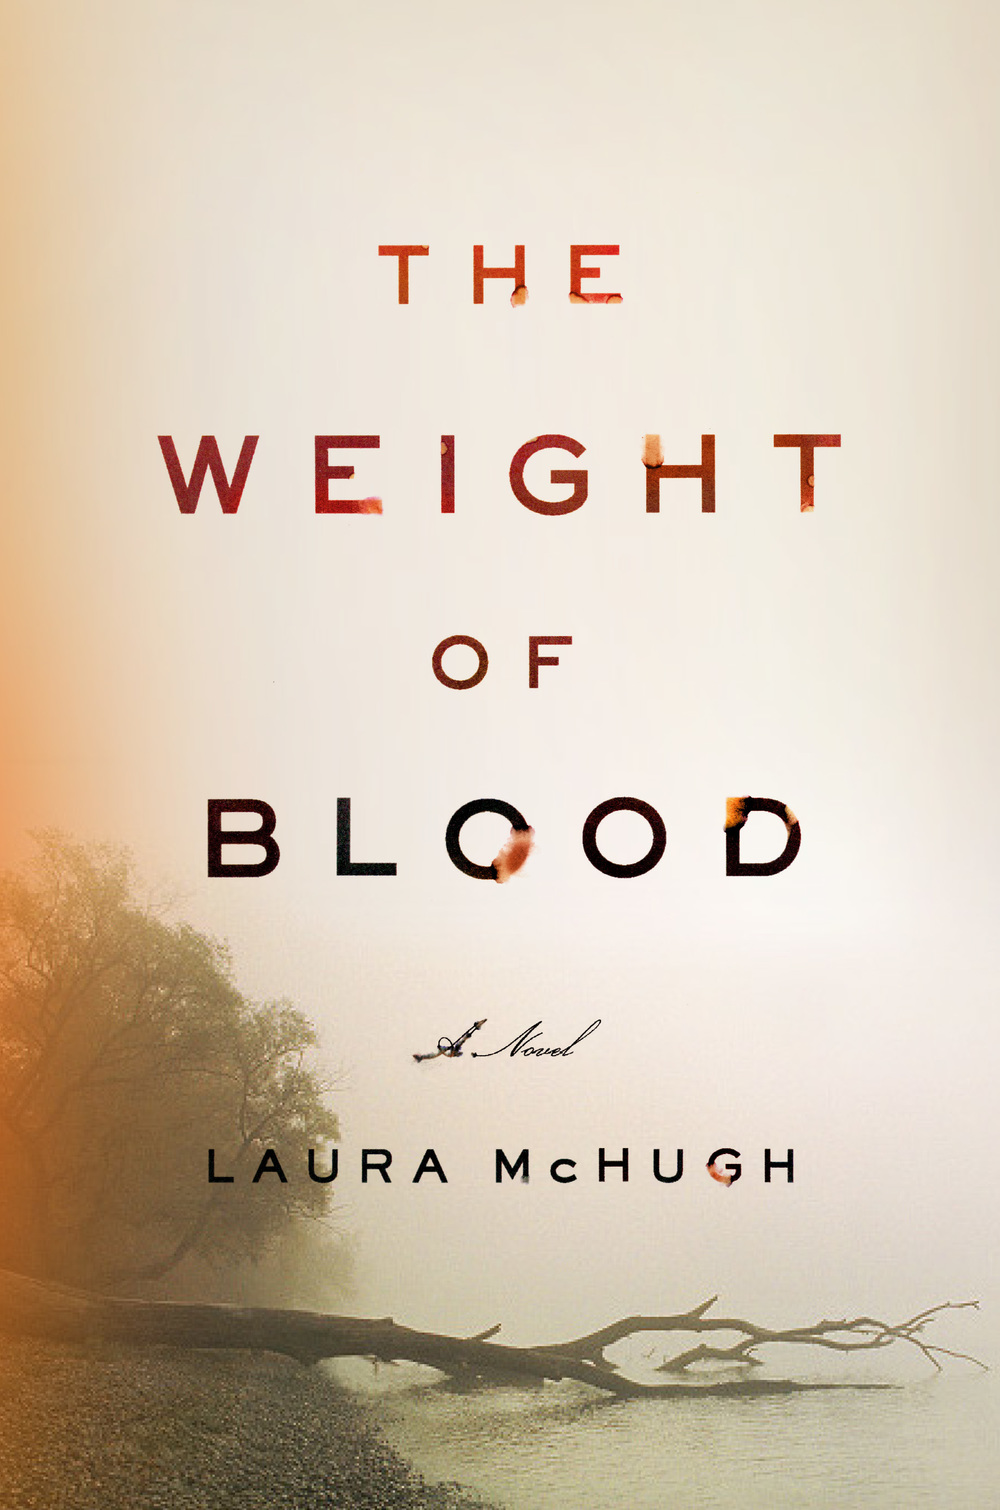 The Weight of Blood by Laura McHugh  Amazon  |  Goodreads